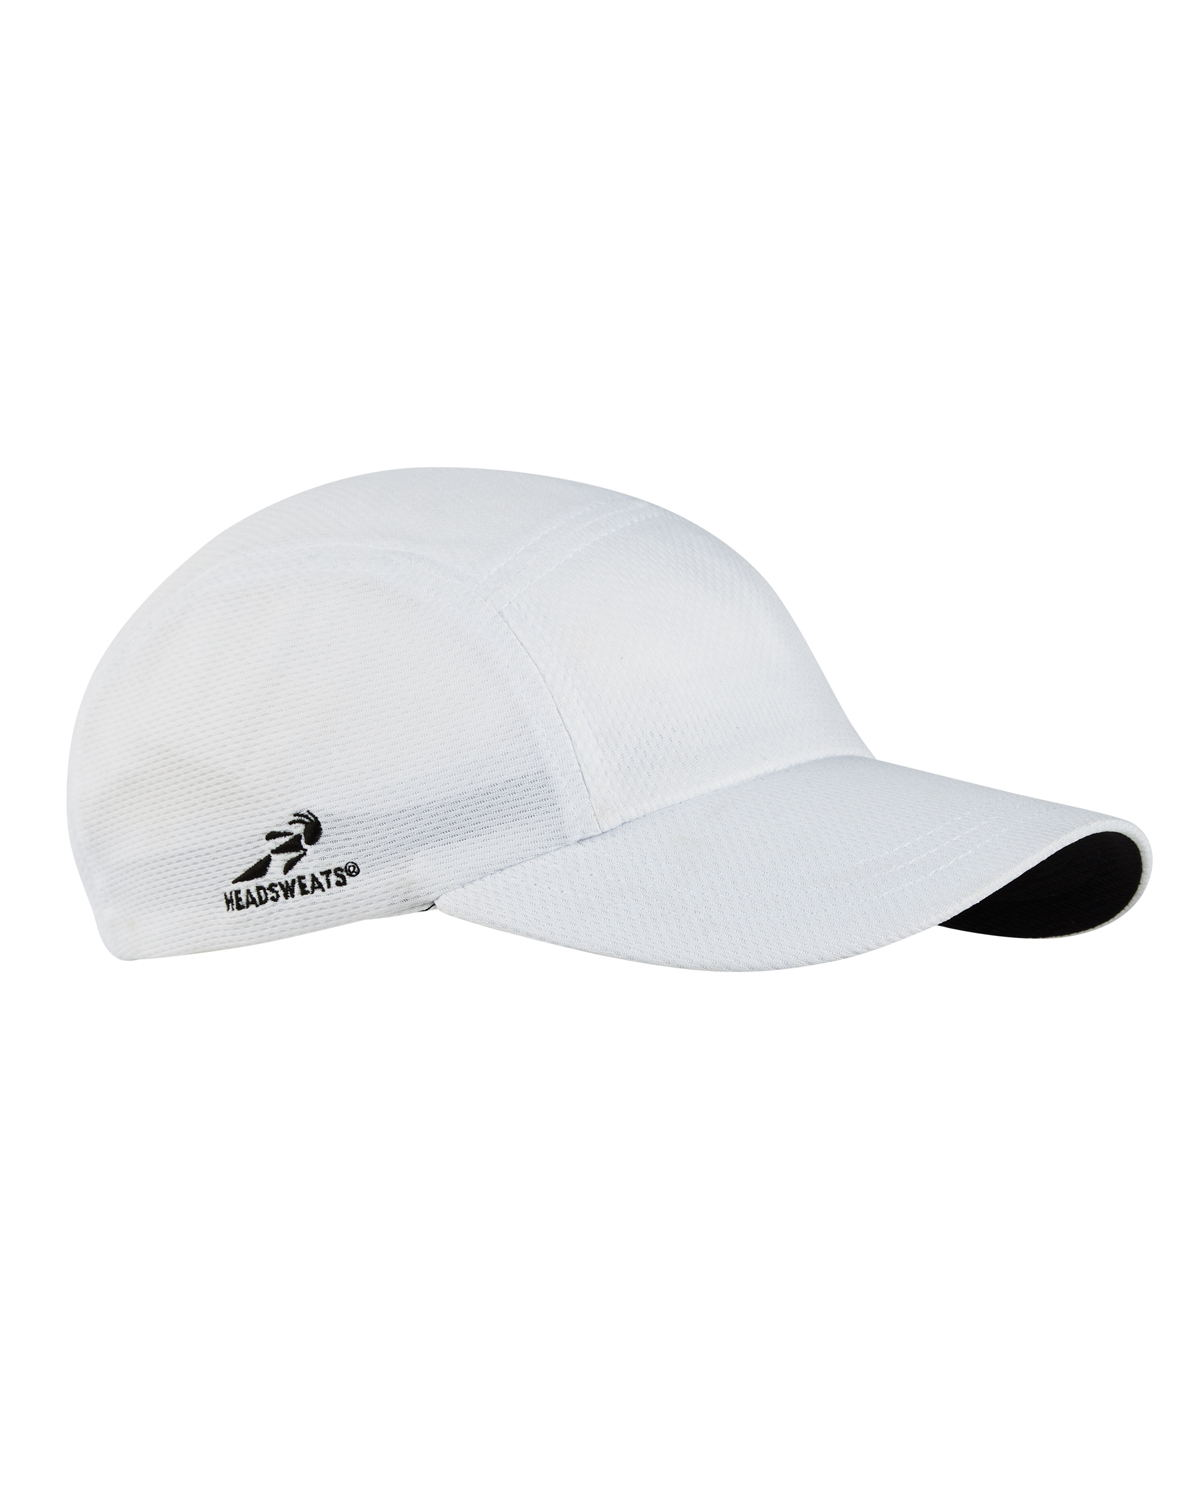 Headsweats HDSW01 - Race Hat